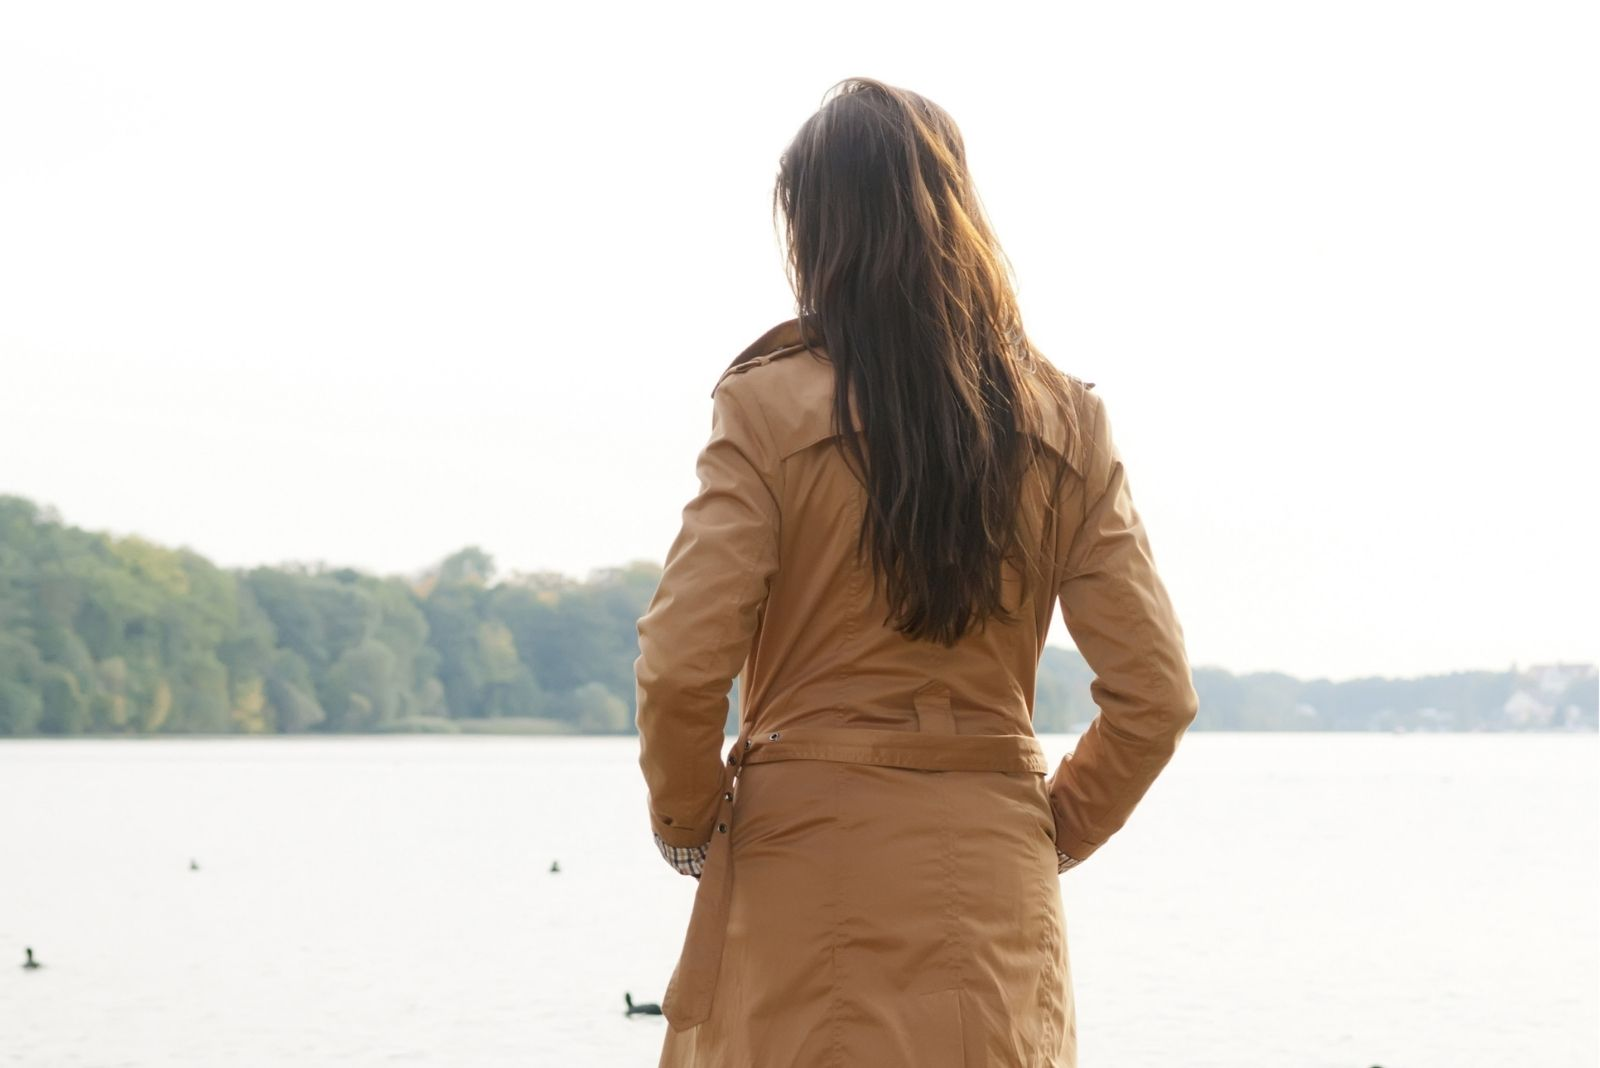 rear view of a woman facing the lake or body of water